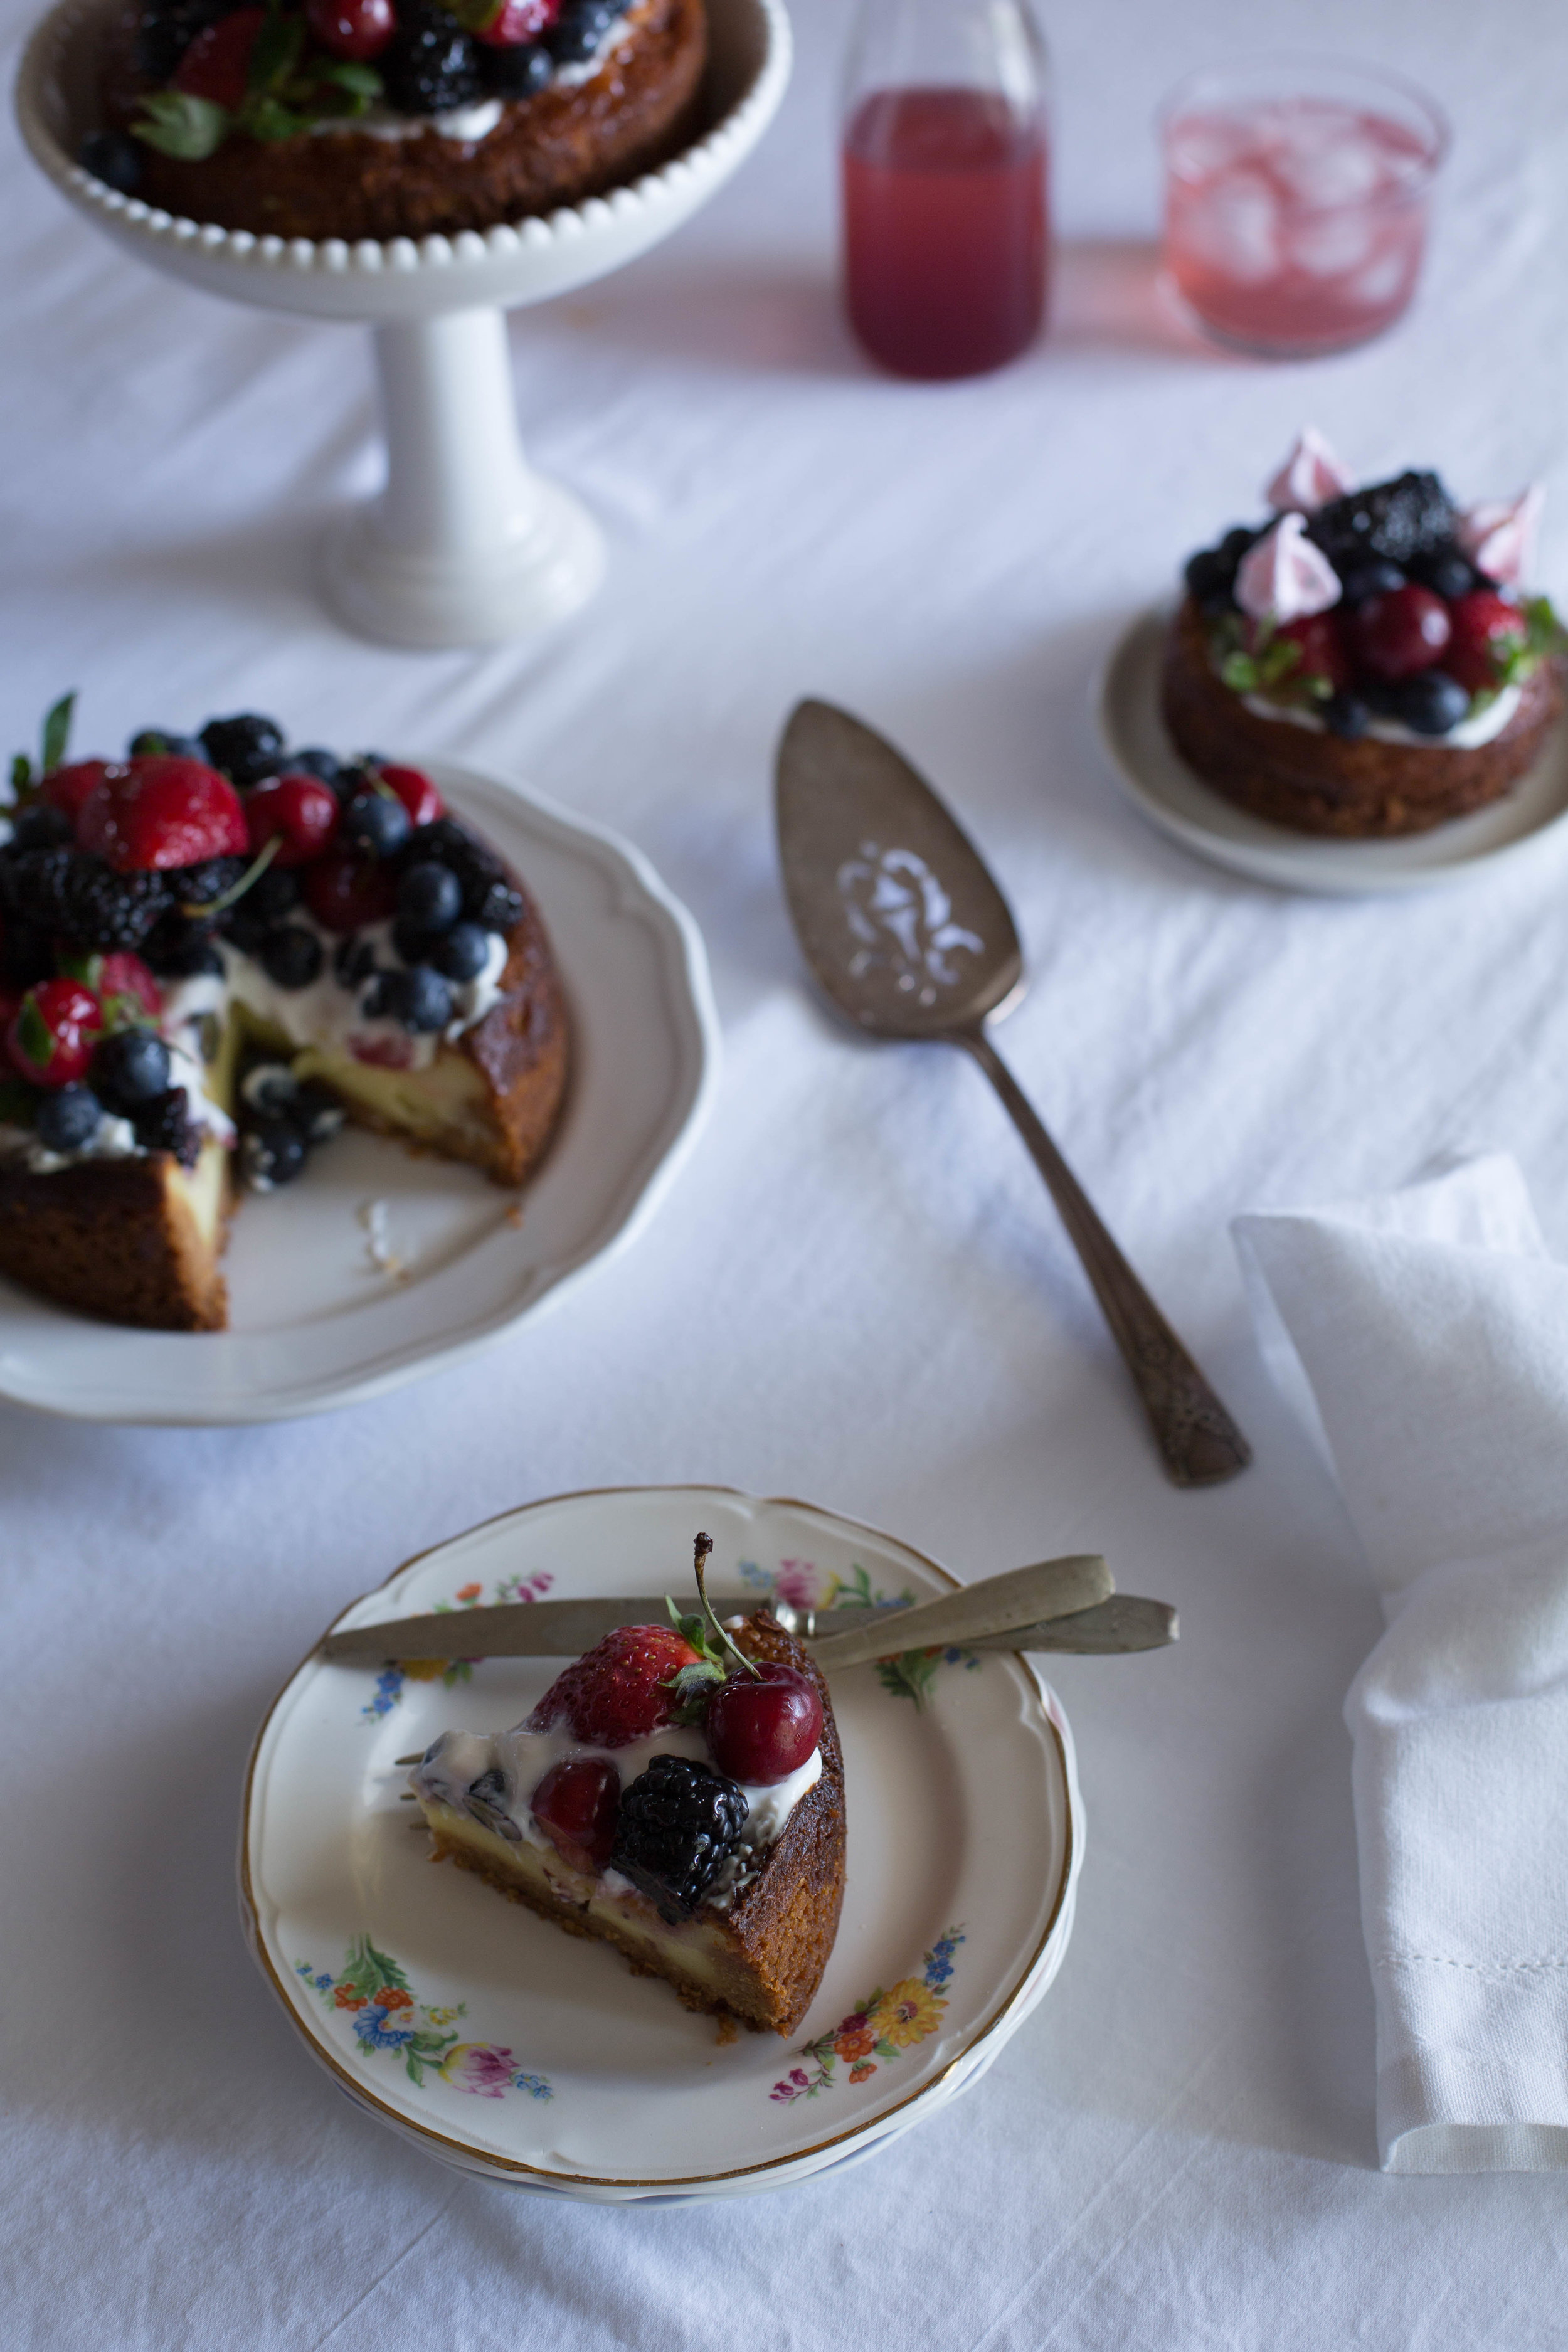 Cheesecakewithsourcream&berries